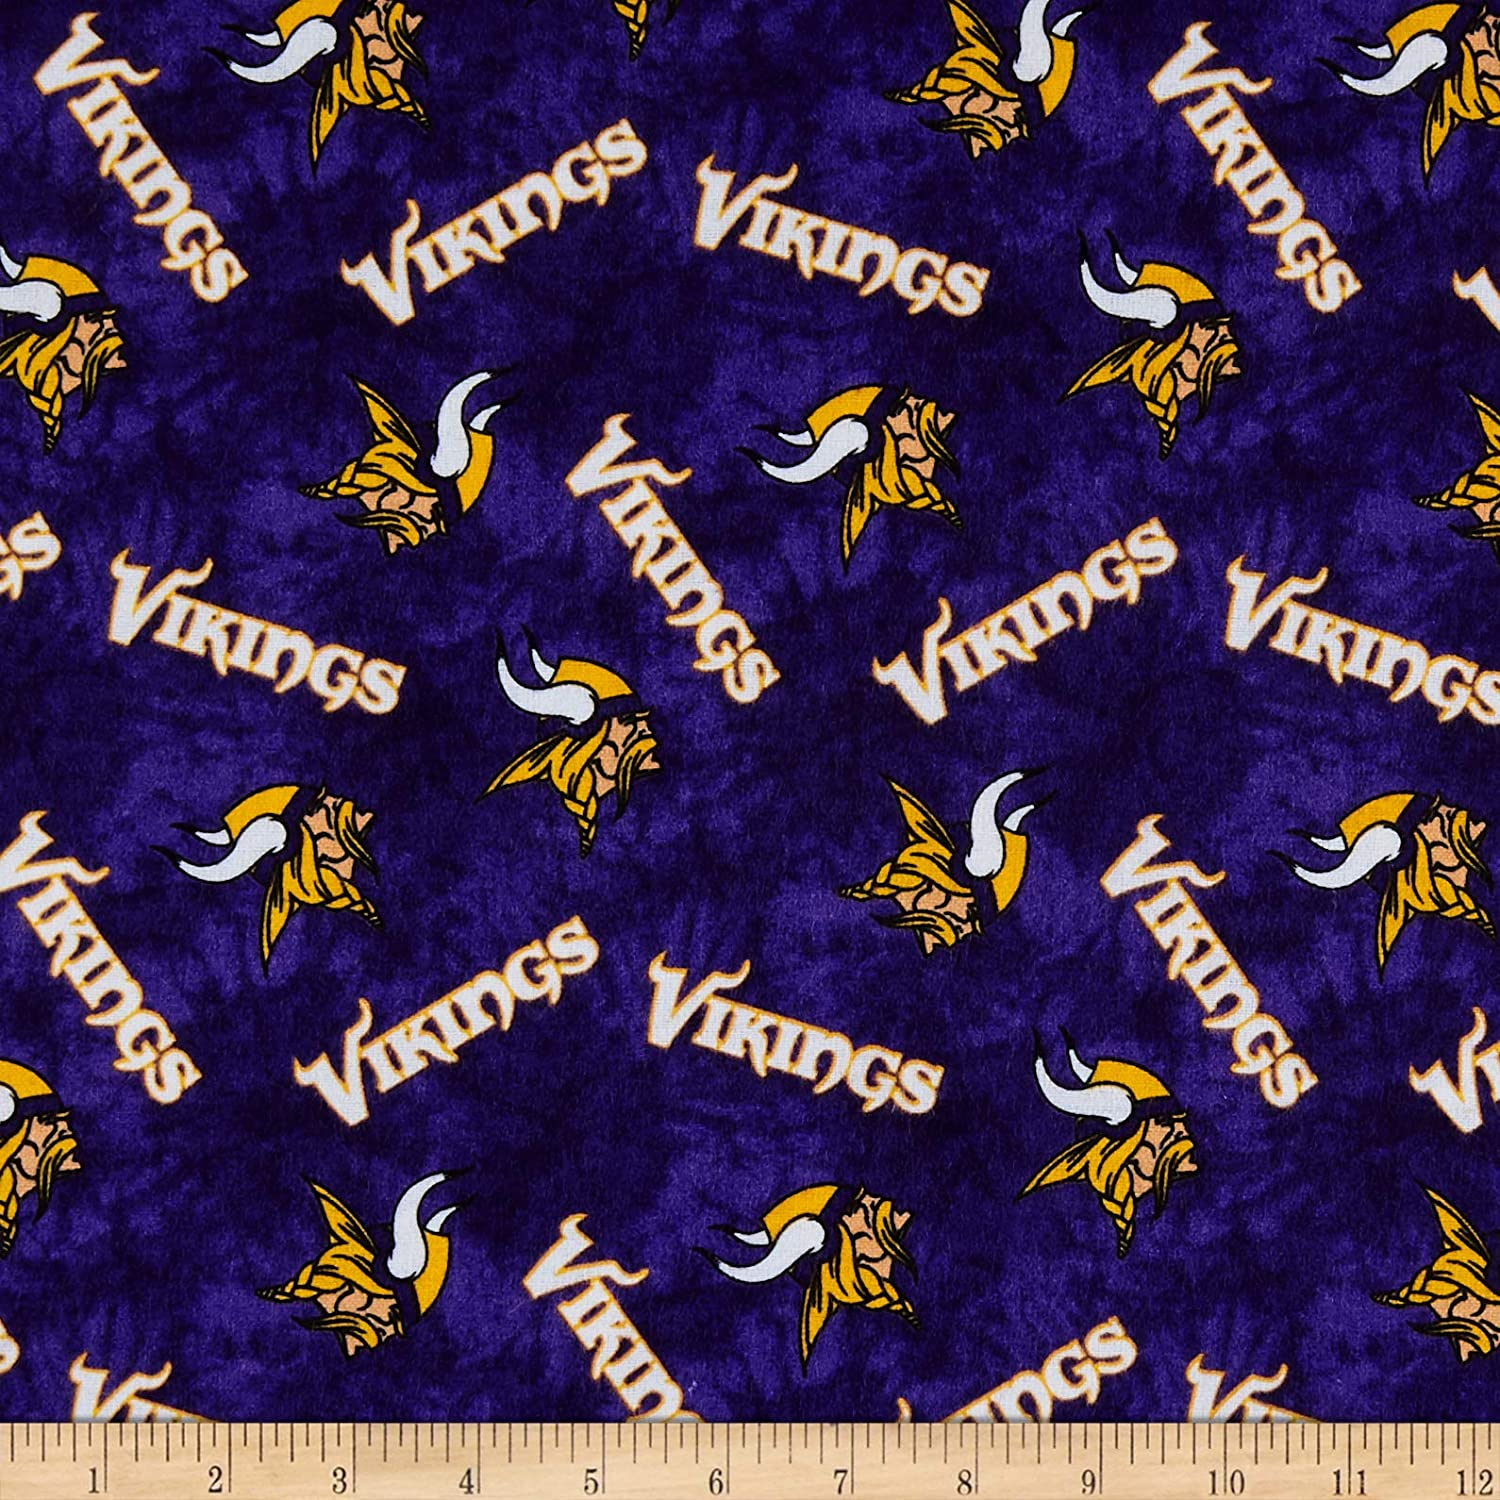 88e298253 Traditions flannel minnesota vikings tie dye purple fabric the yard jpg  1500x1500 Minnesota vikings tie dye